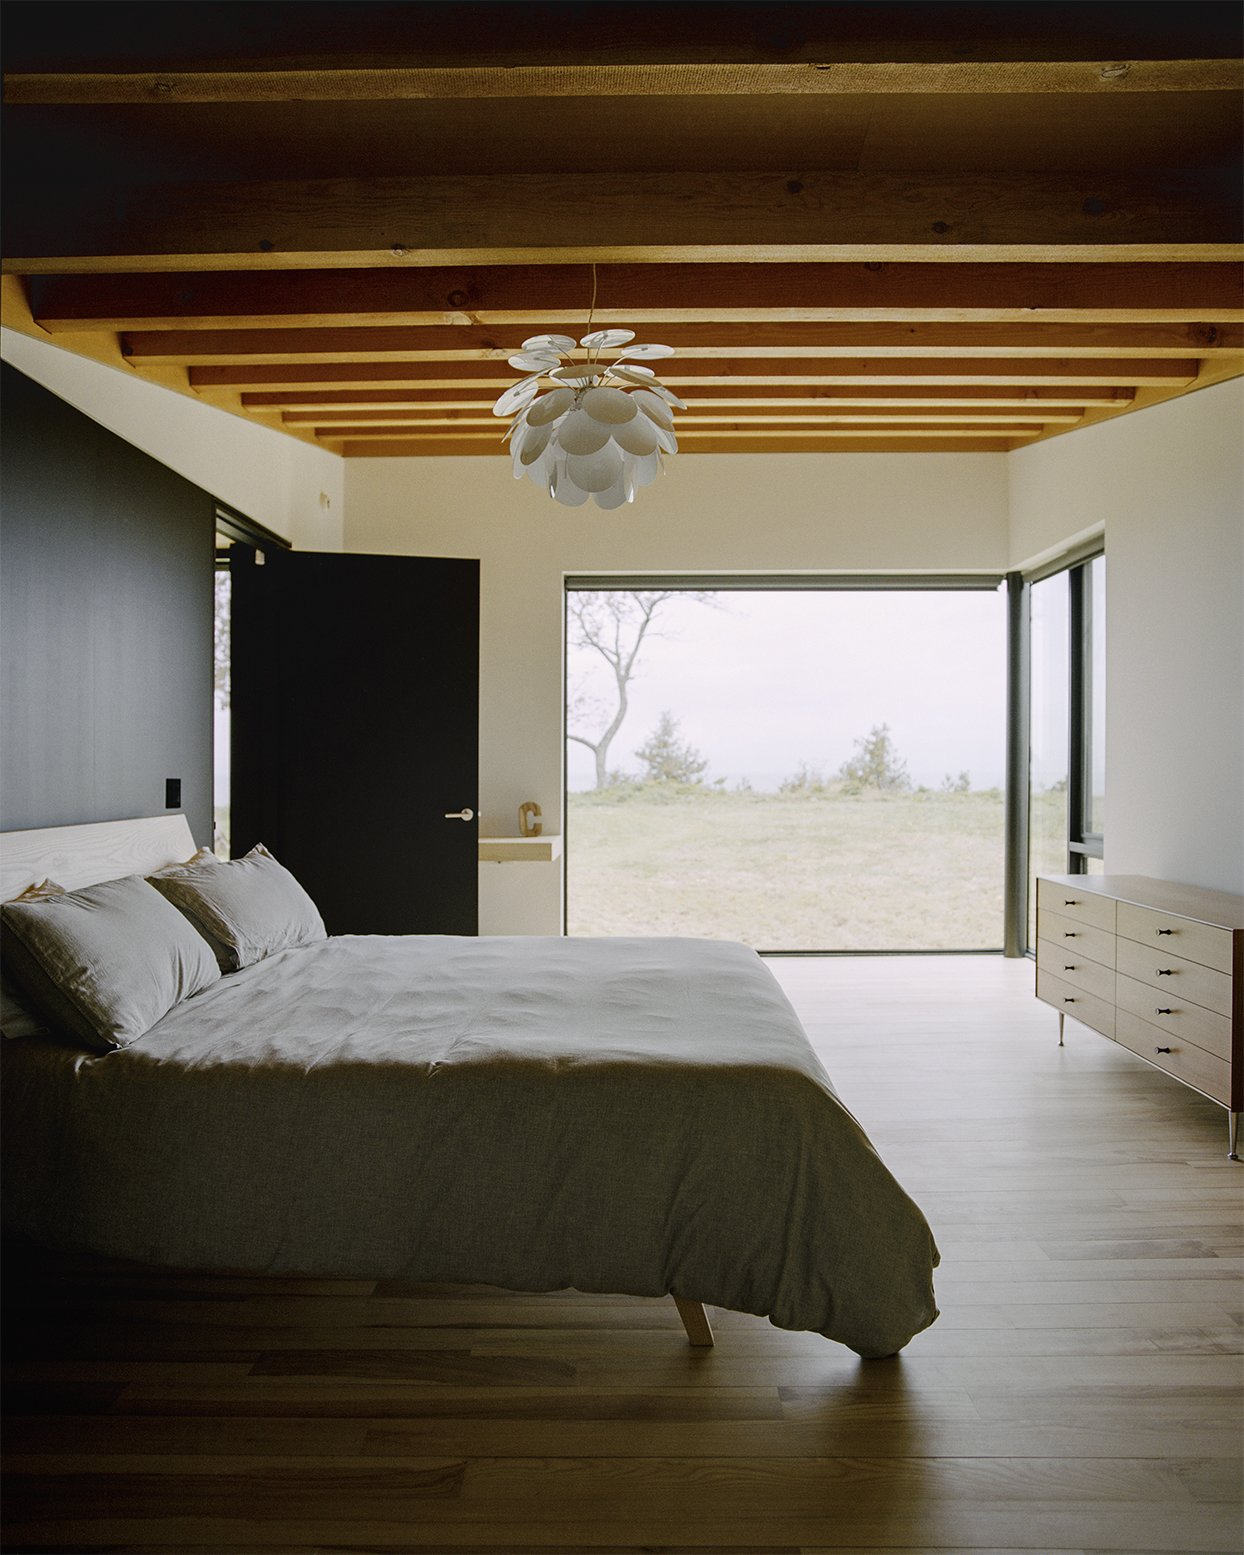 In the master bedroom, the ash bed was designed by Desai Chia  and fabricated by Gary Cheadle  of Woodbine; the dresser is by  George Nelson for Herman Miller. Panes by Western Windows  appear throughout the home. - Leelanau County, Michigan Dwell Magazine : September / October 2017 Tagged: Bedroom, Dresser, Light Hardwood Floor, Shelves, Bed, and Pendant Lighting.  Best Photos from Plagued Ash Trees Were Repurposed to Create This Charred-Cedar Clad Home on Lake Michigan